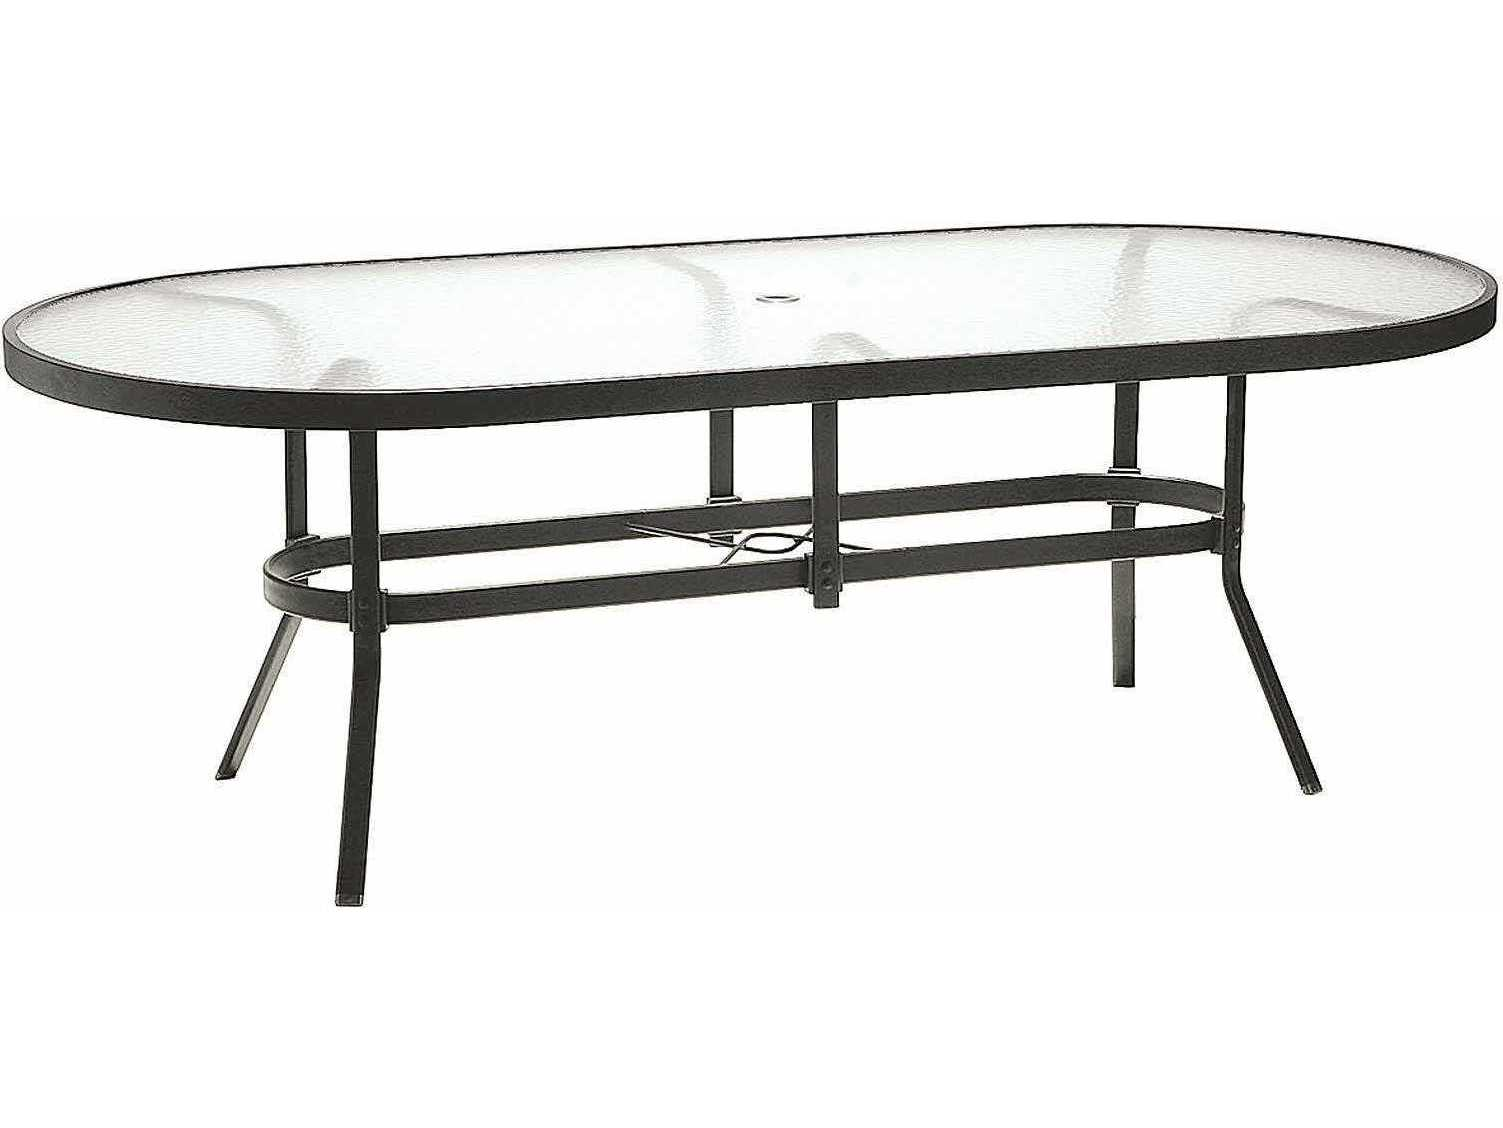 Patio Tables Dining: Winston Obscure Glass Aluminum 76'' X 42'' Oval Dining